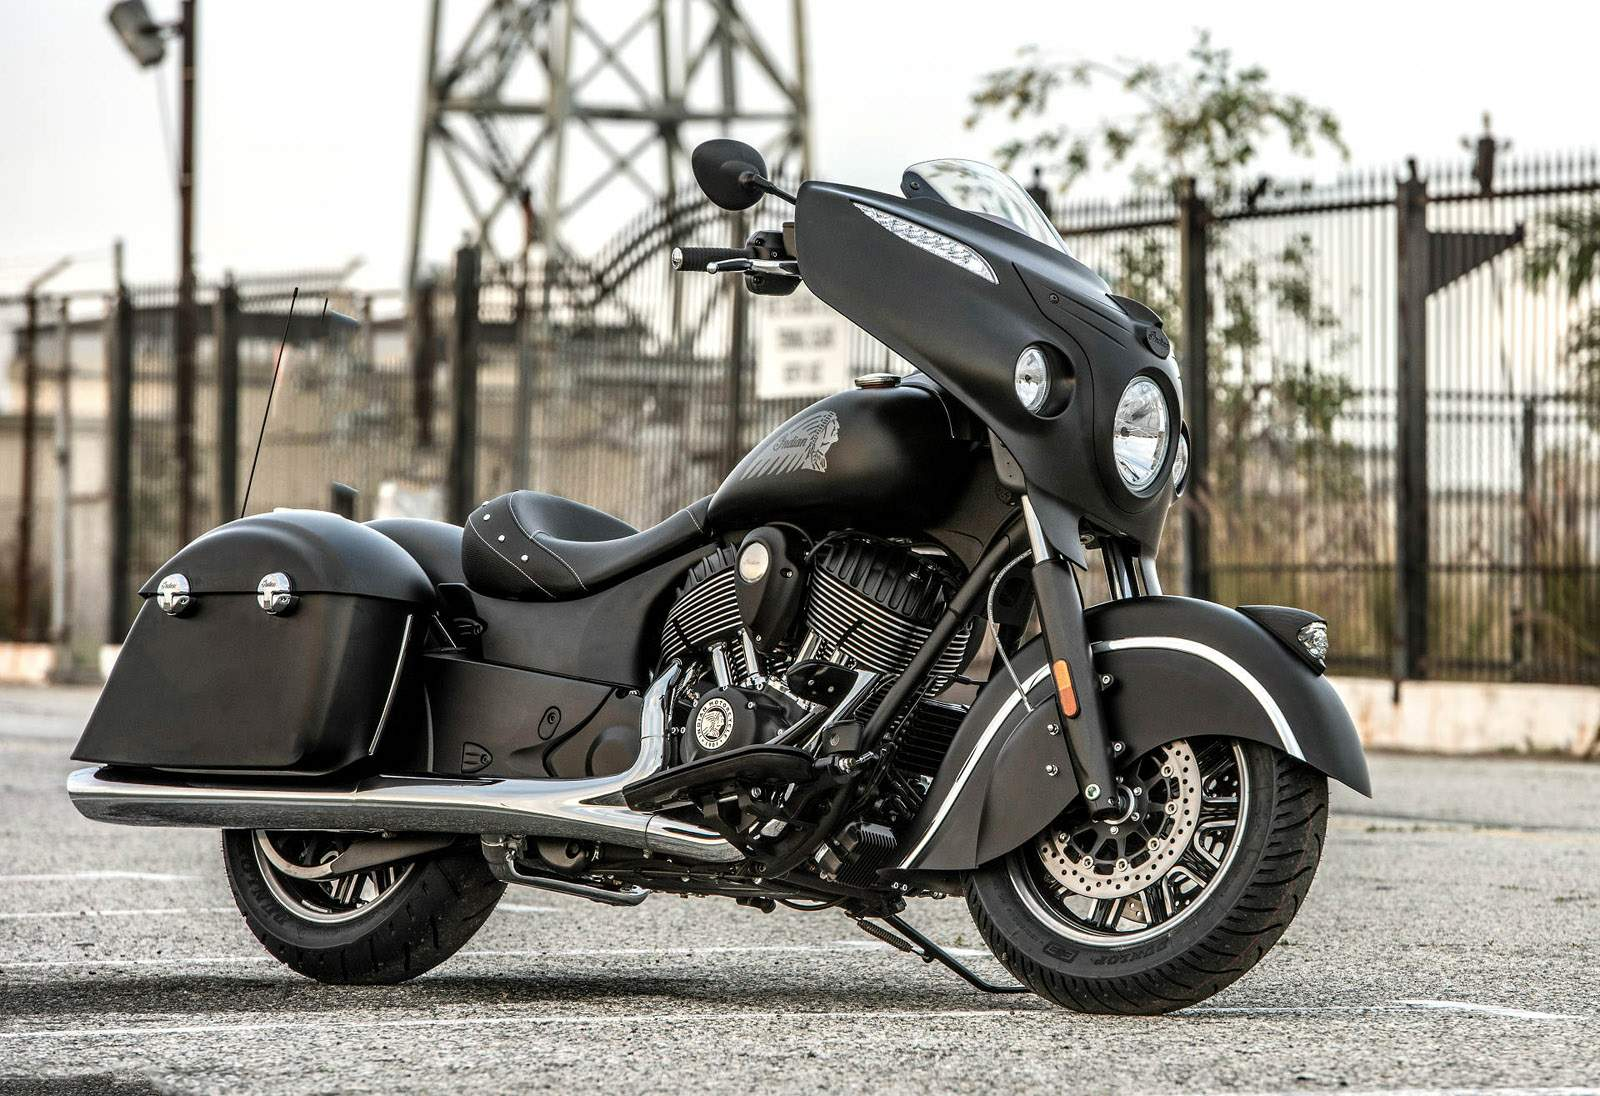 Indian Chieftain Dark Horse technical specifications